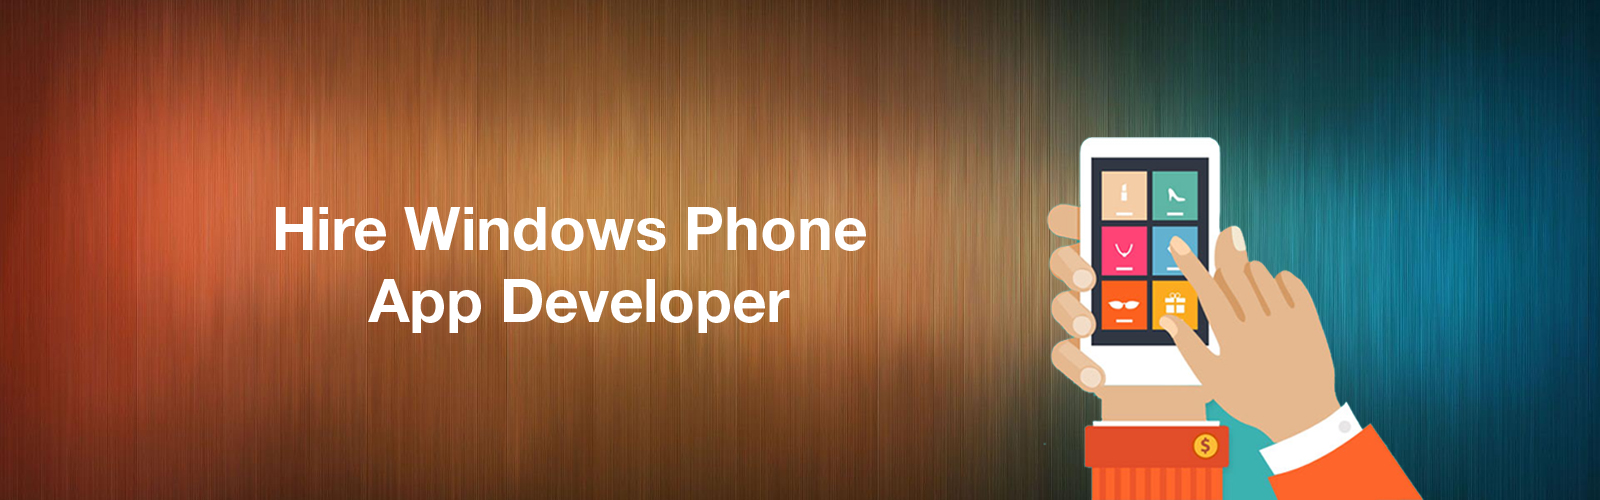 Hire Windows Phone App Developer